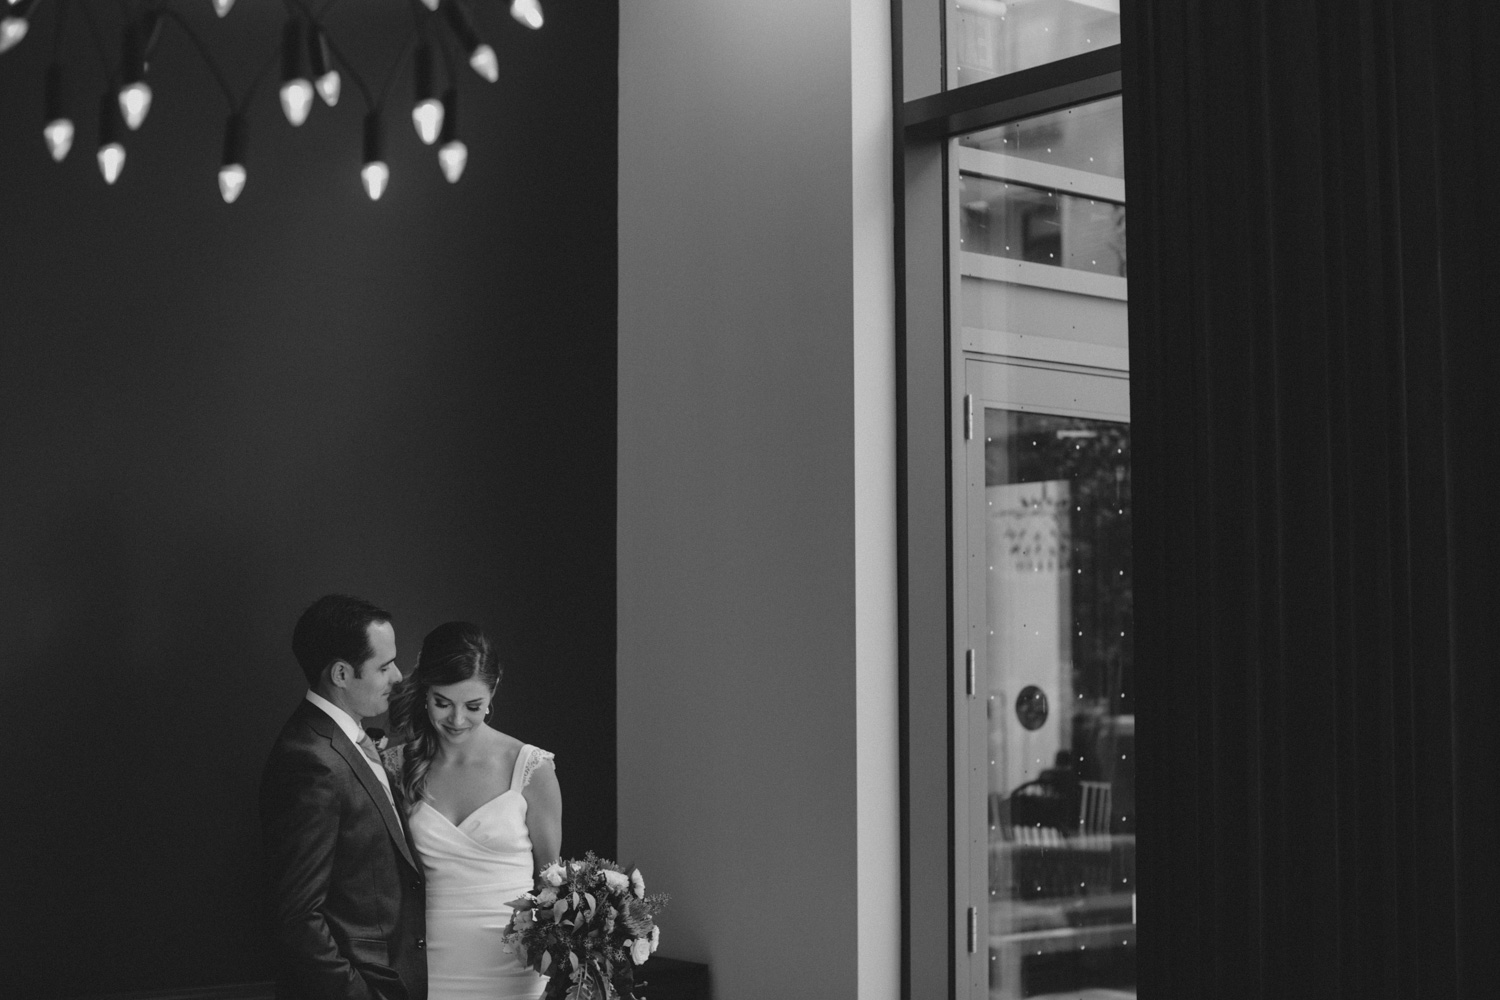 Steam-Whistle-Brewery-wedding-photos-Toronto-wedding-photography-by-Sam-Wong-of-Artanis-Collective_26.jpg